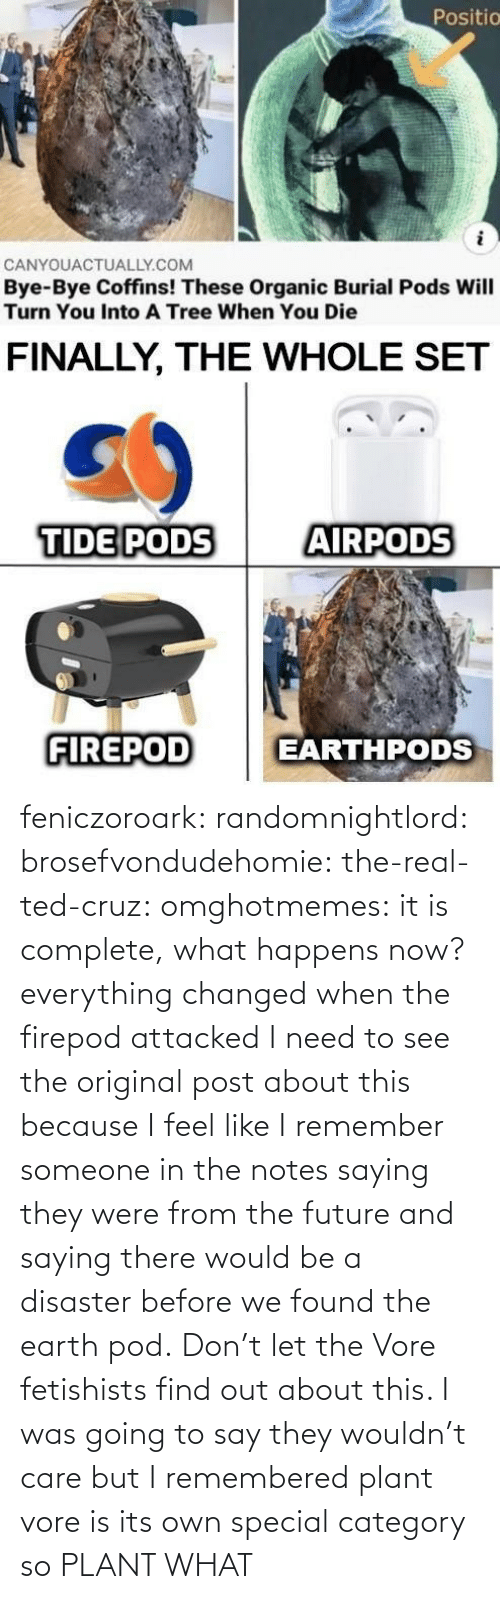 Future, Ted, and Ted Cruz: feniczoroark:  randomnightlord:  brosefvondudehomie: the-real-ted-cruz:  omghotmemes: it is complete, what happens now? everything changed when the firepod attacked    I need to see the original post about this because I feel like I remember someone in the notes saying they were from the future and saying there would be a disaster before we found the earth pod.    Don't let the Vore fetishists find out about this.    I was going to say they wouldn't care but I remembered plant vore is its own special category so   PLANT WHAT